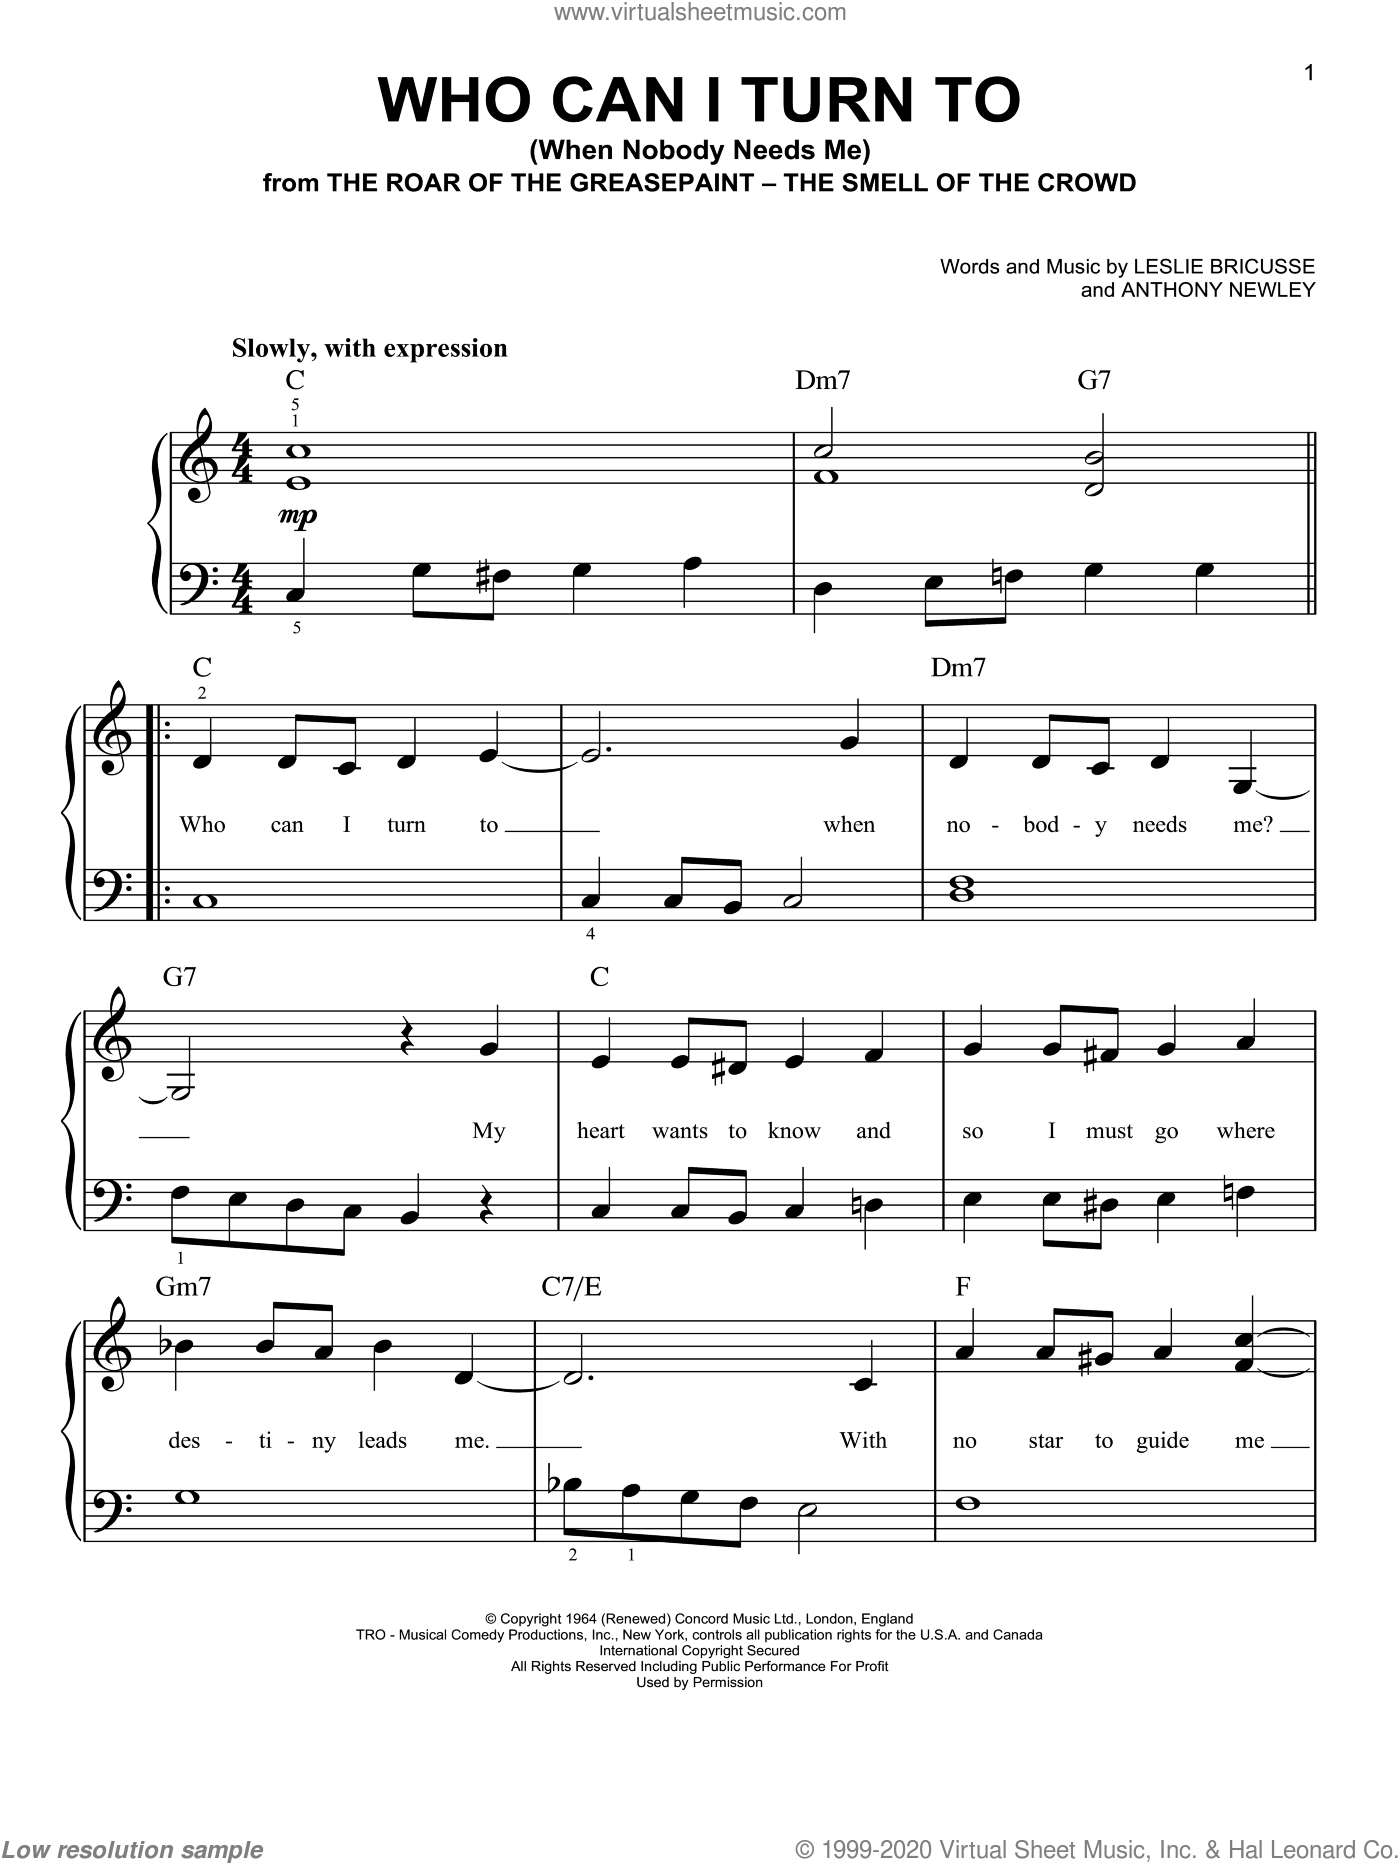 Who Can I Turn To (When Nobody Needs Me) sheet music for piano solo by Leslie Bricusse, Tony Bennett and Anthony Newley. Score Image Preview.